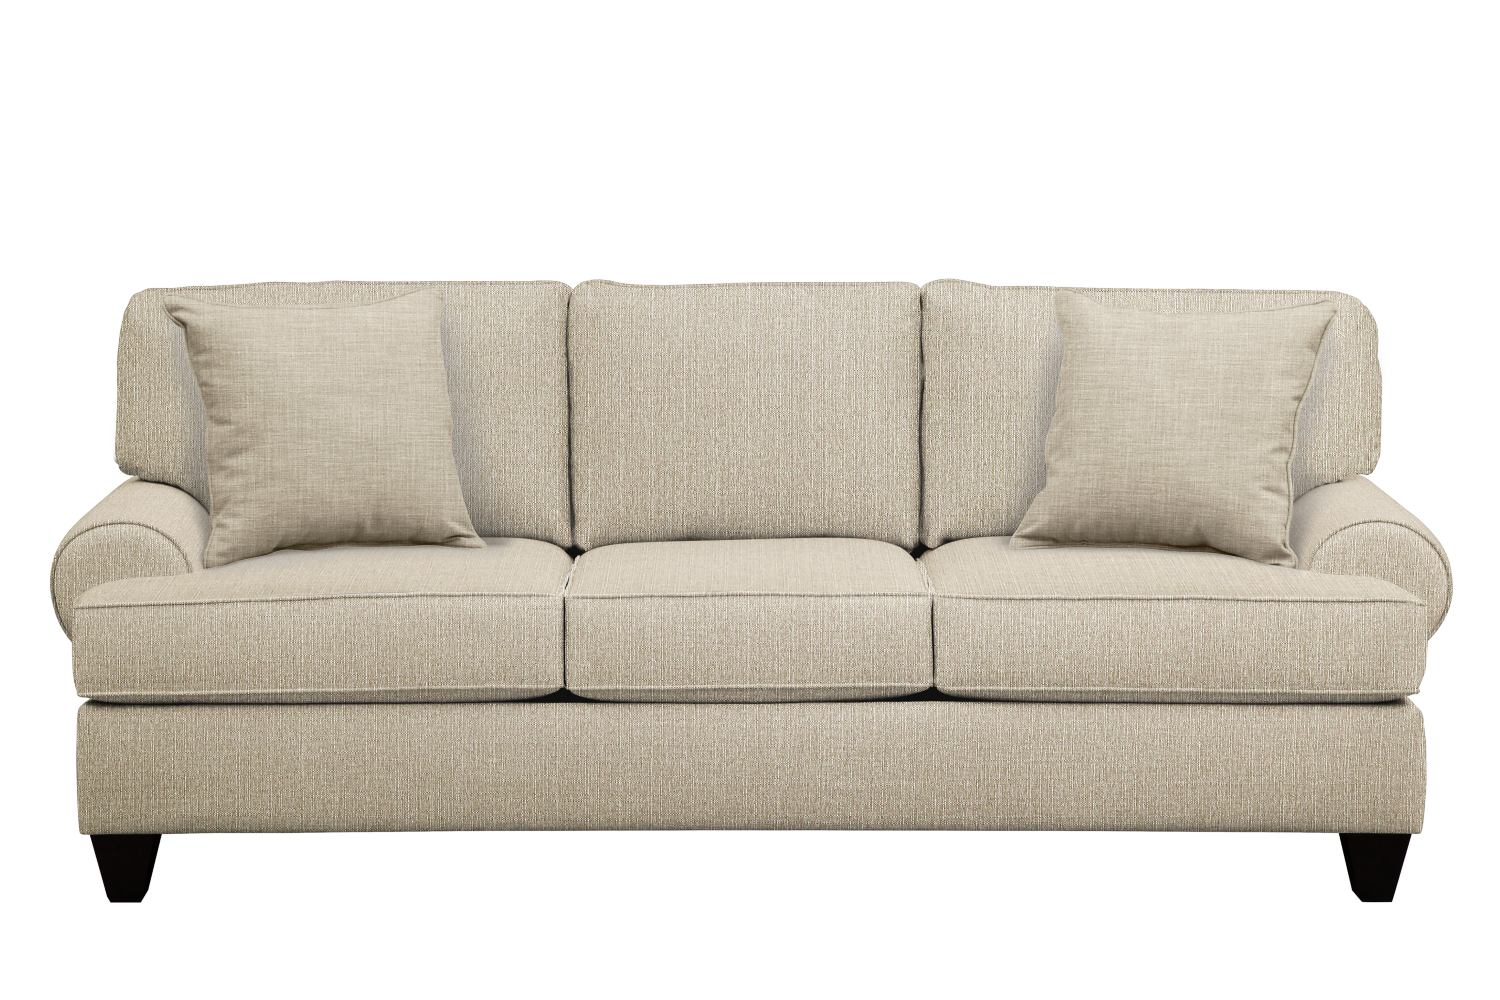 "Living Room Furniture - Bailey Roll Arm Sofa 91"" Depalma Taupe w/ Depalma Taupe  Pillow"